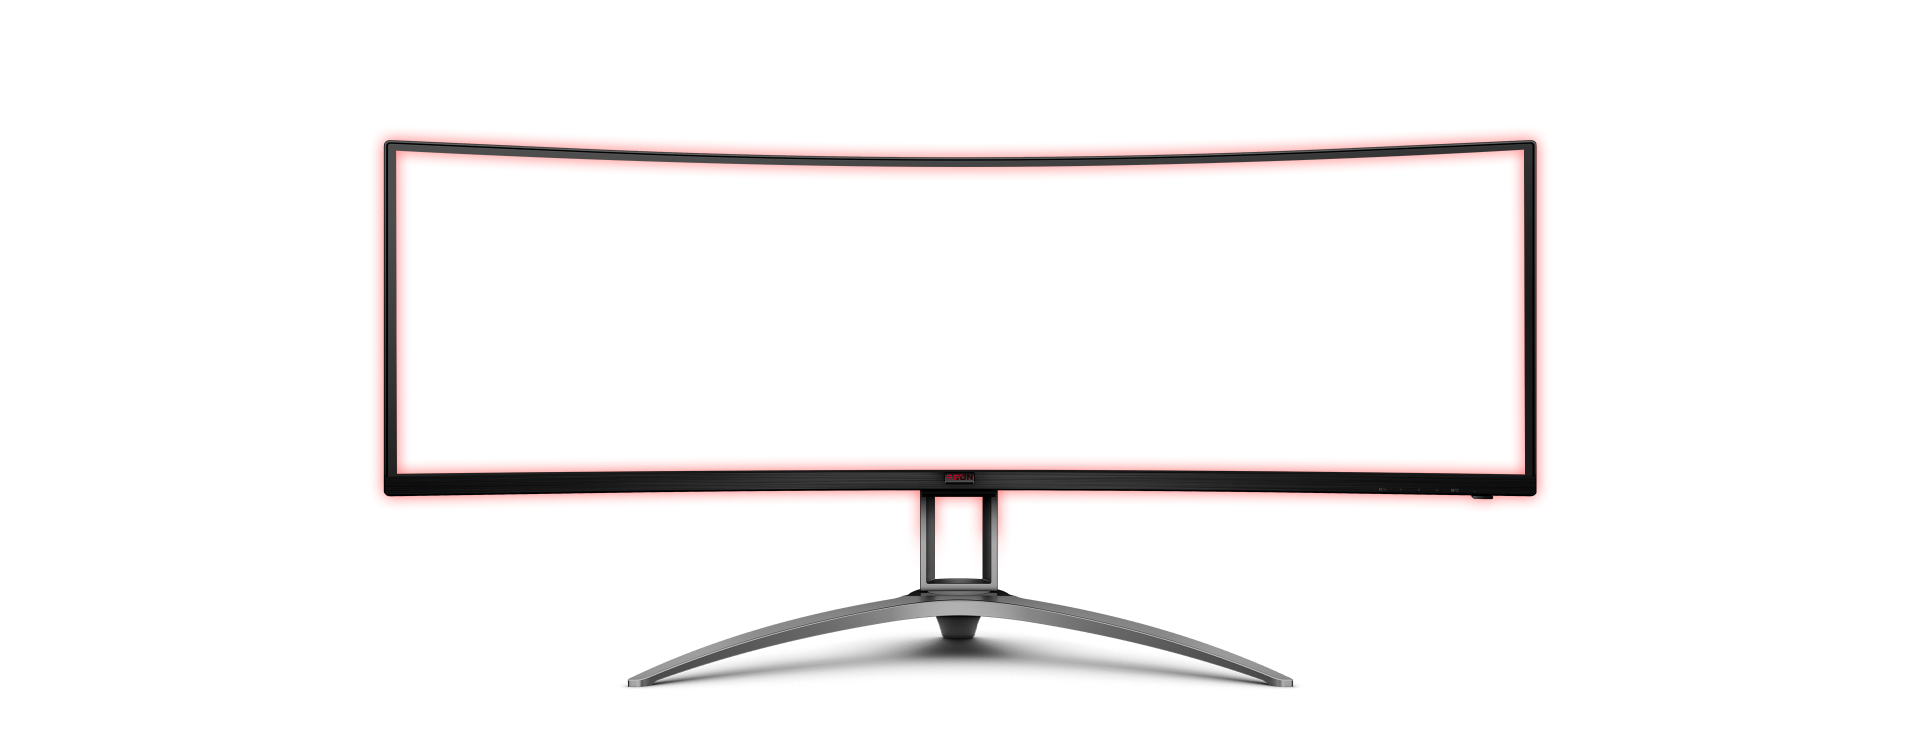 AGON_AG493_ULTRAWIDE_FRONT.png